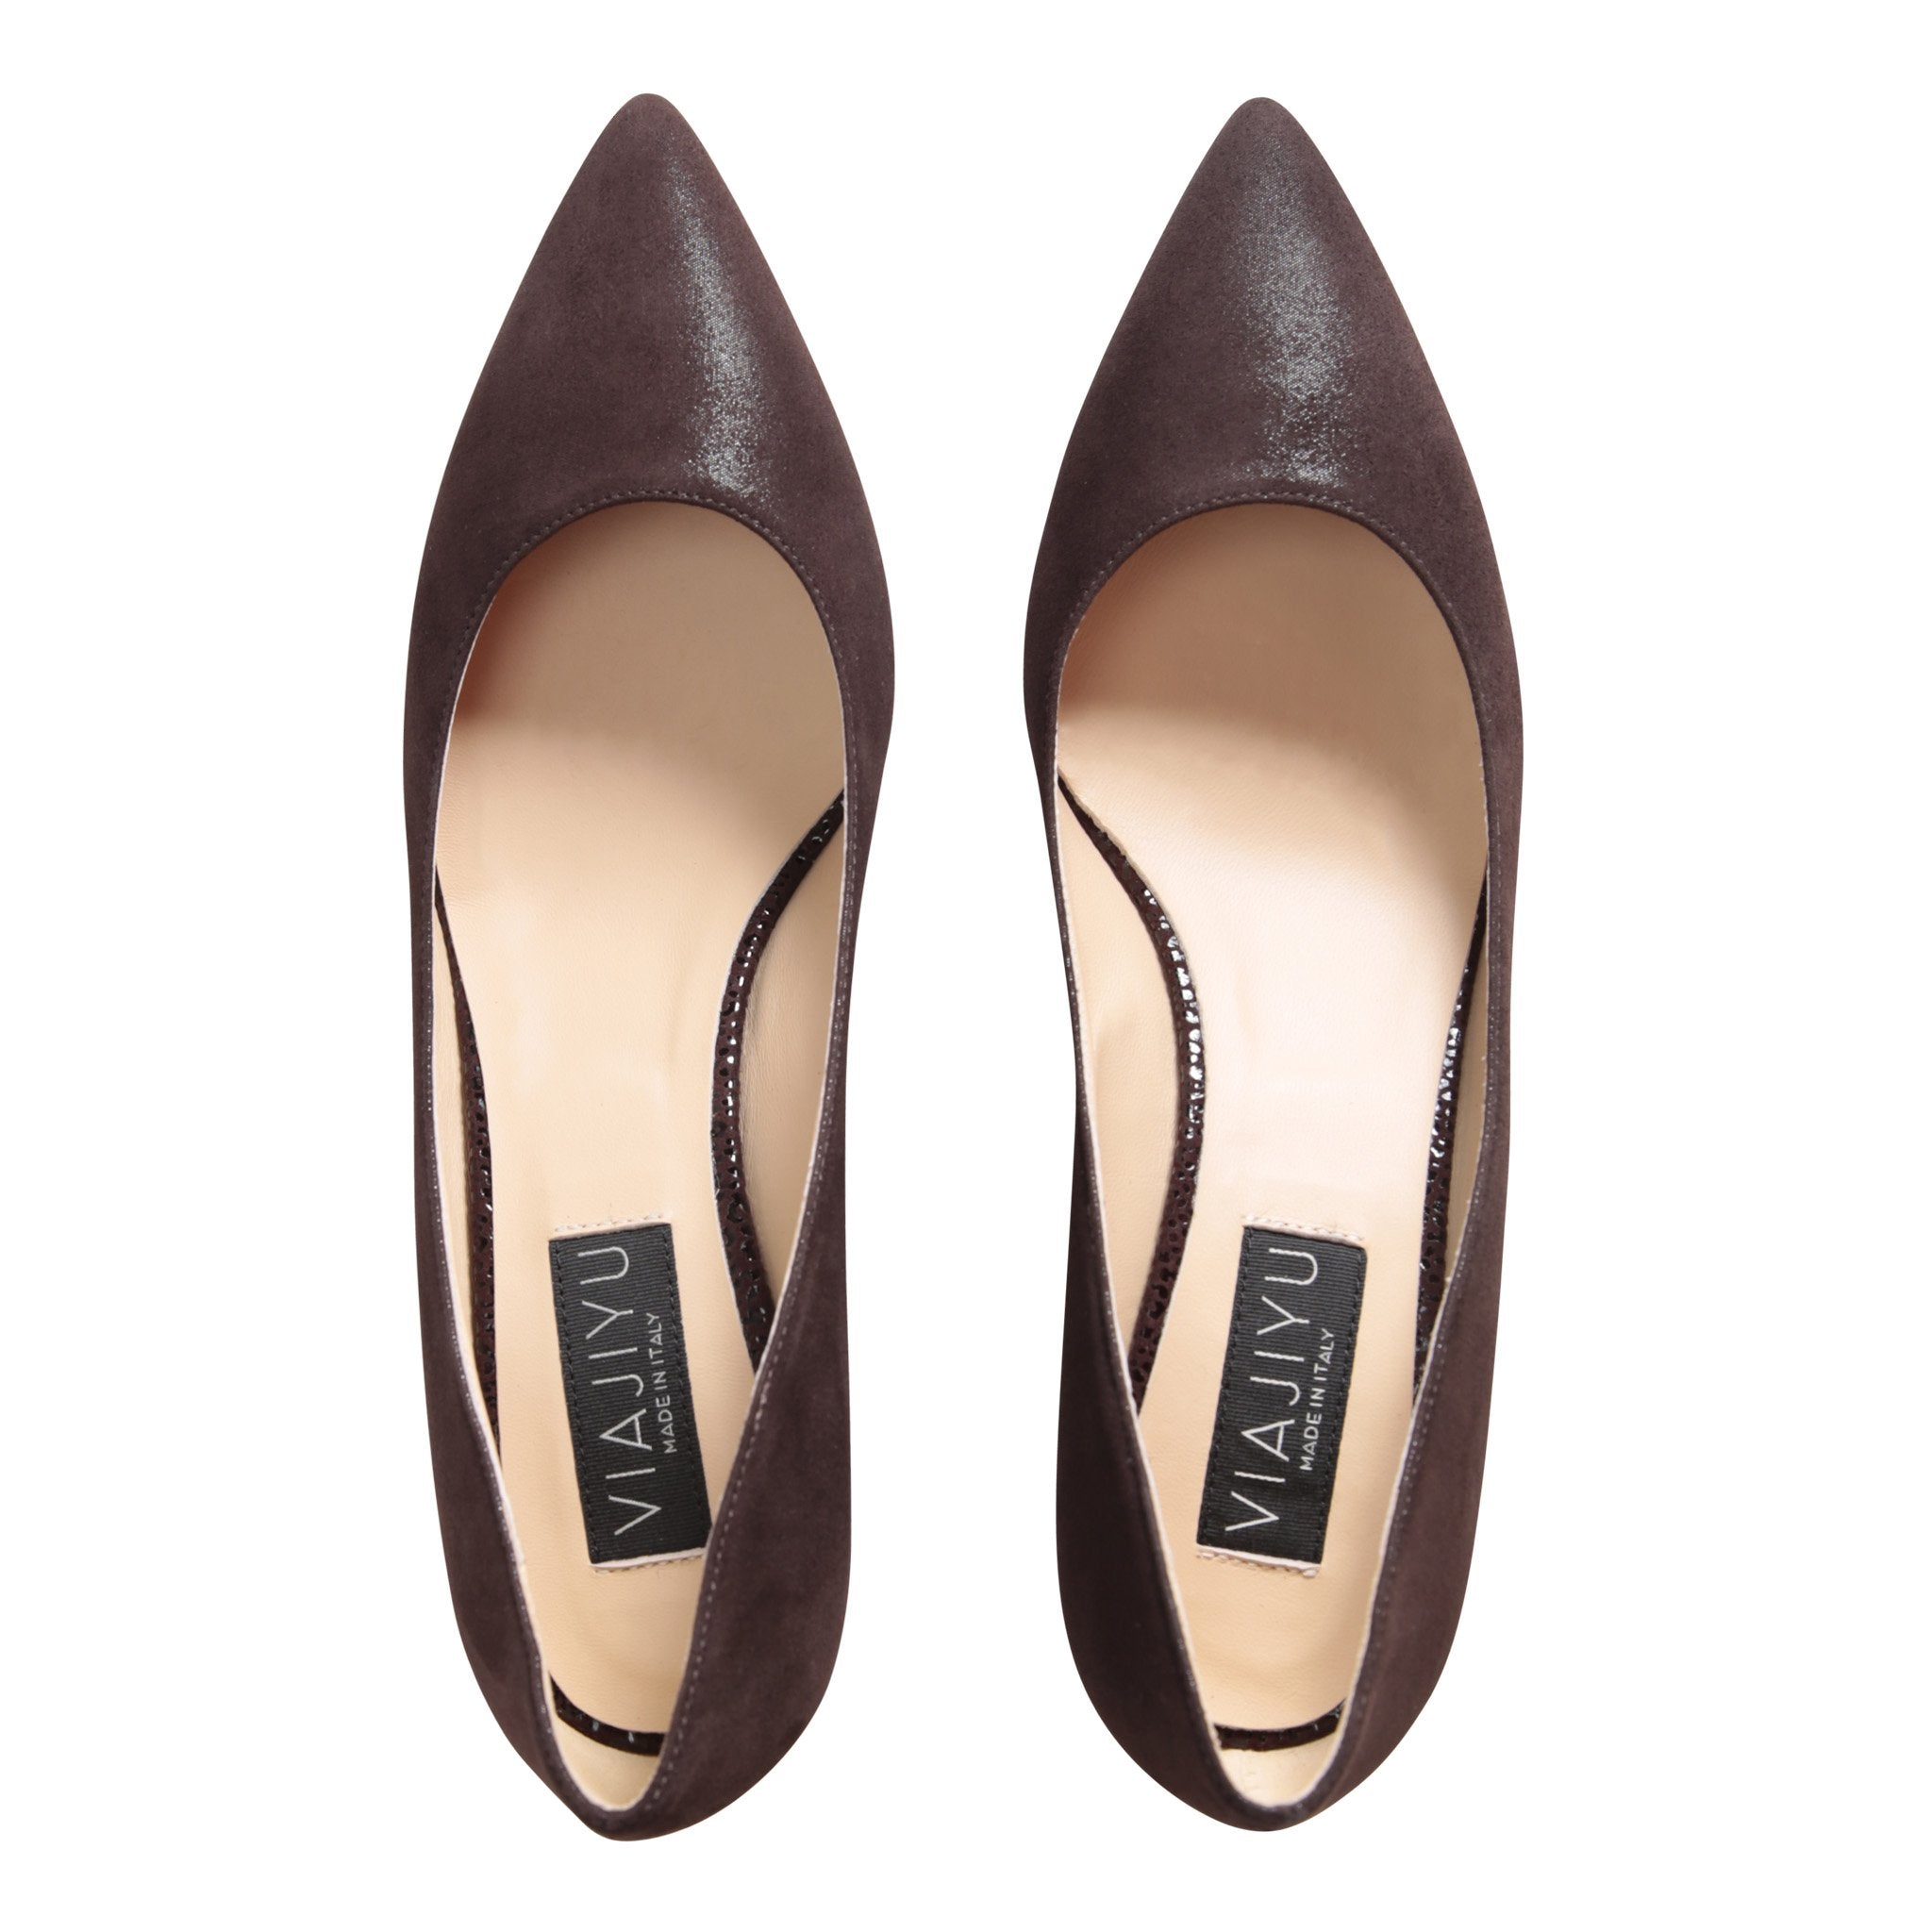 TRENTO - Hydra + Savannah Espresso, VIAJIYU - Women's Hand Made Sustainable Luxury Shoes. Made in Italy. Made to Order.